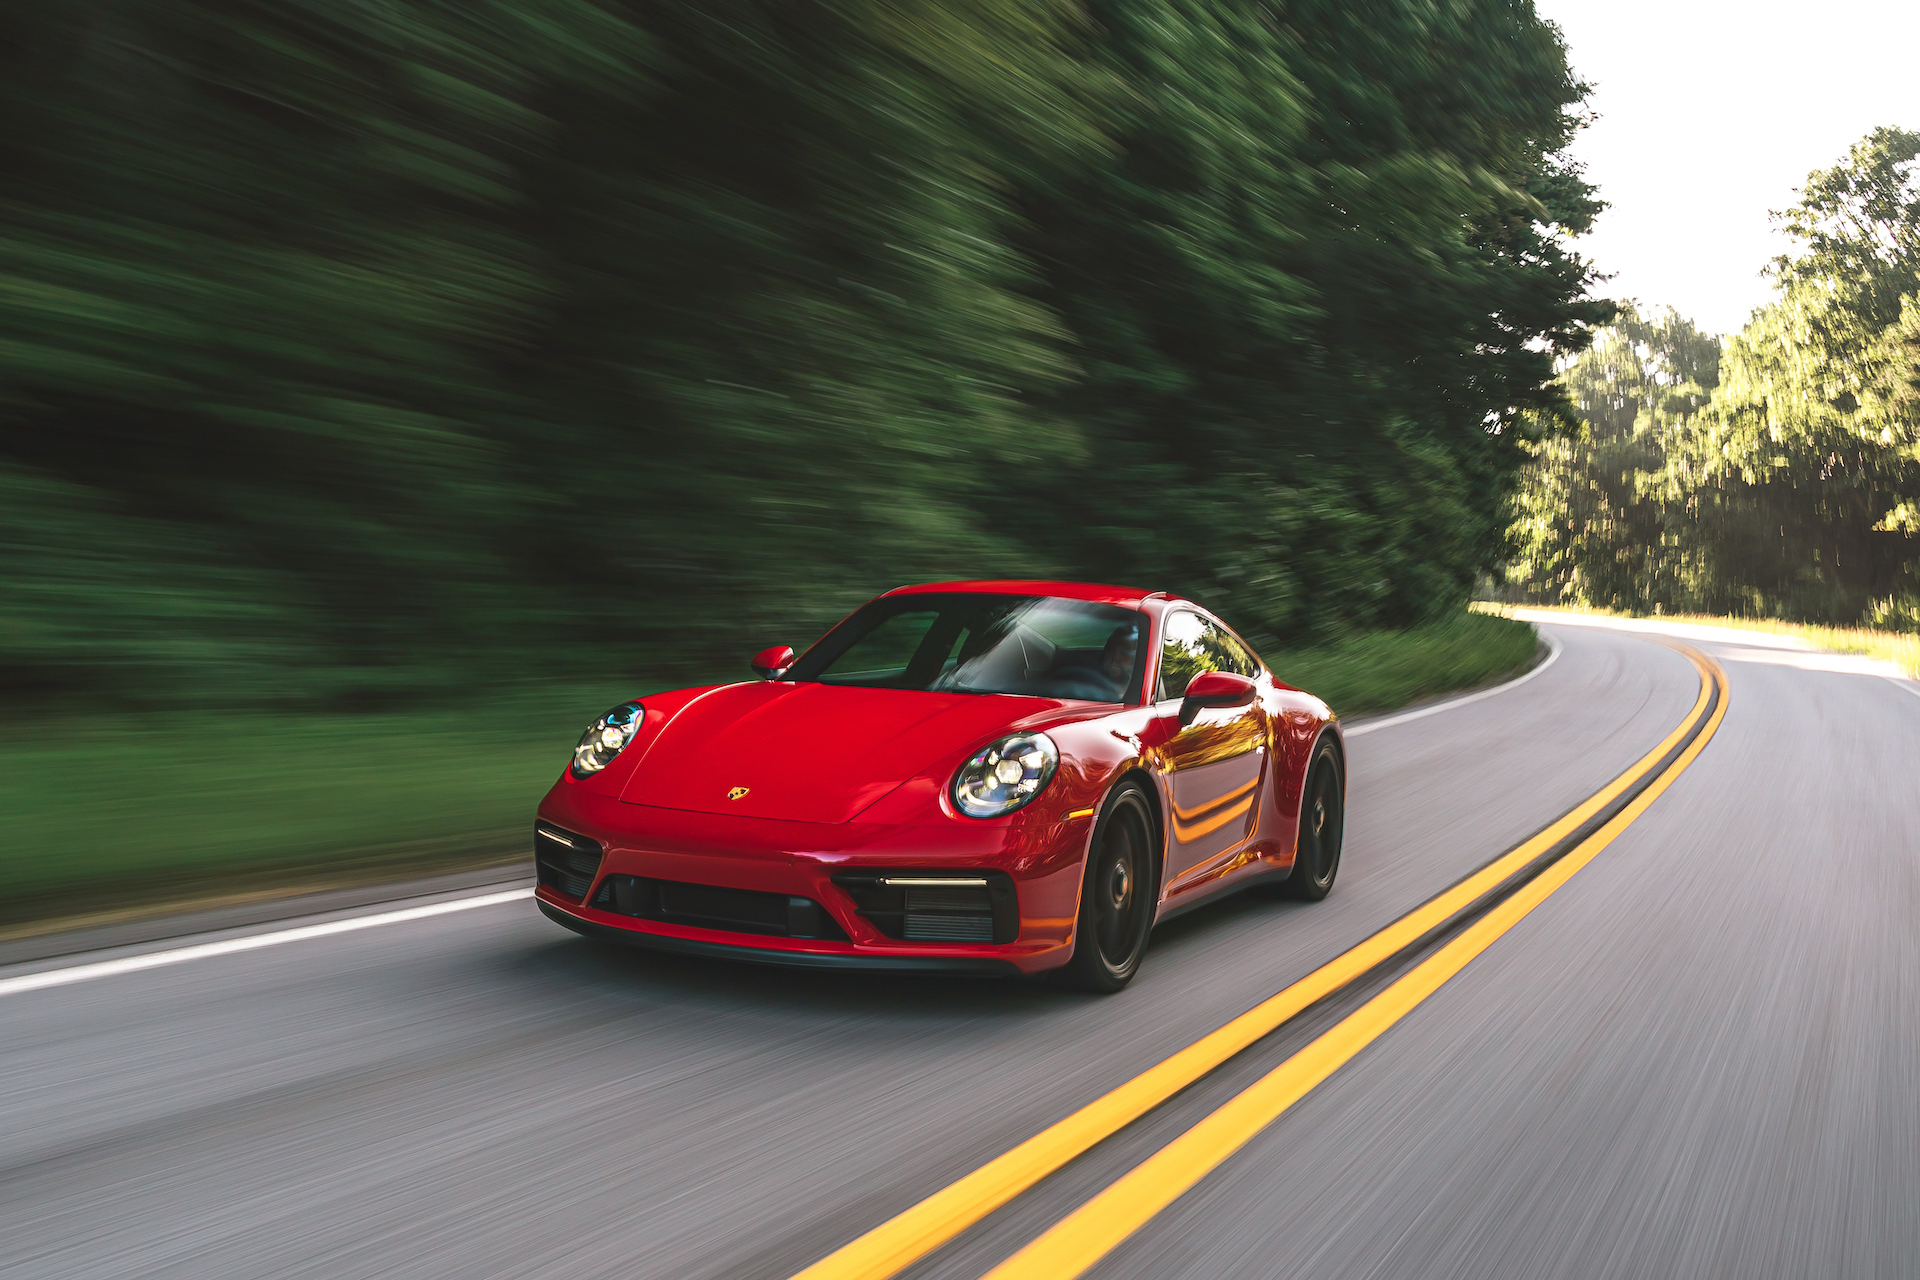 First drive review: 2022 Porsche 911 GTS improves upon greatness